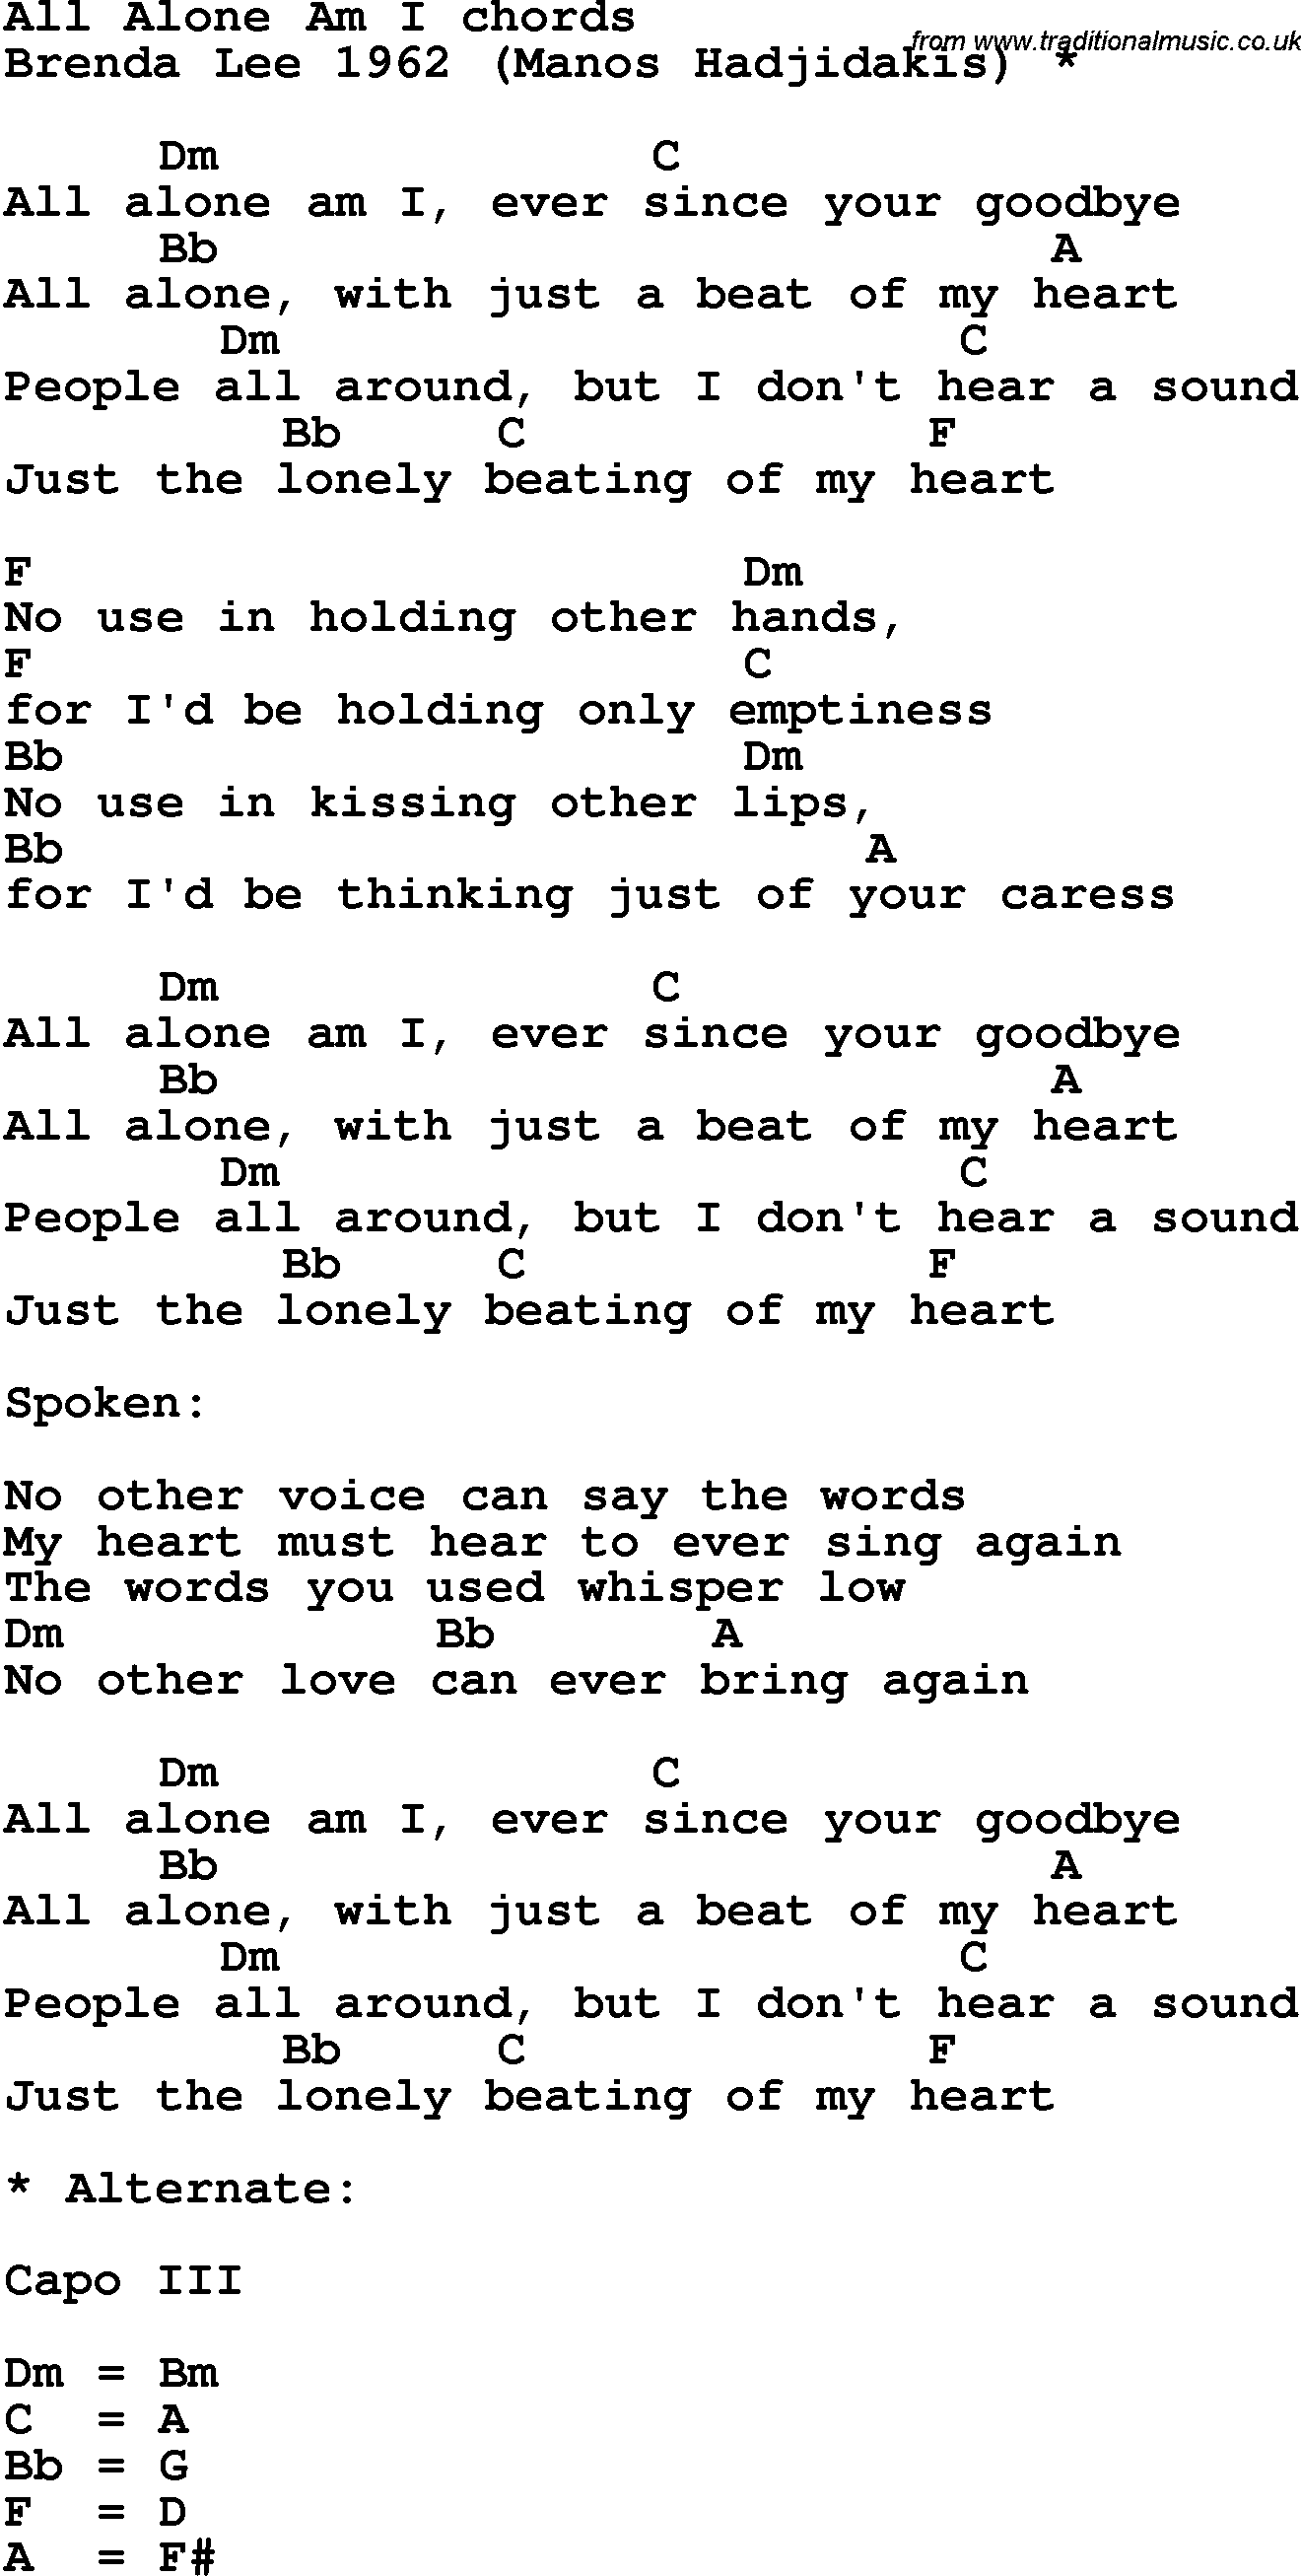 Song Lyrics With Guitar Chords For All Alone Am I